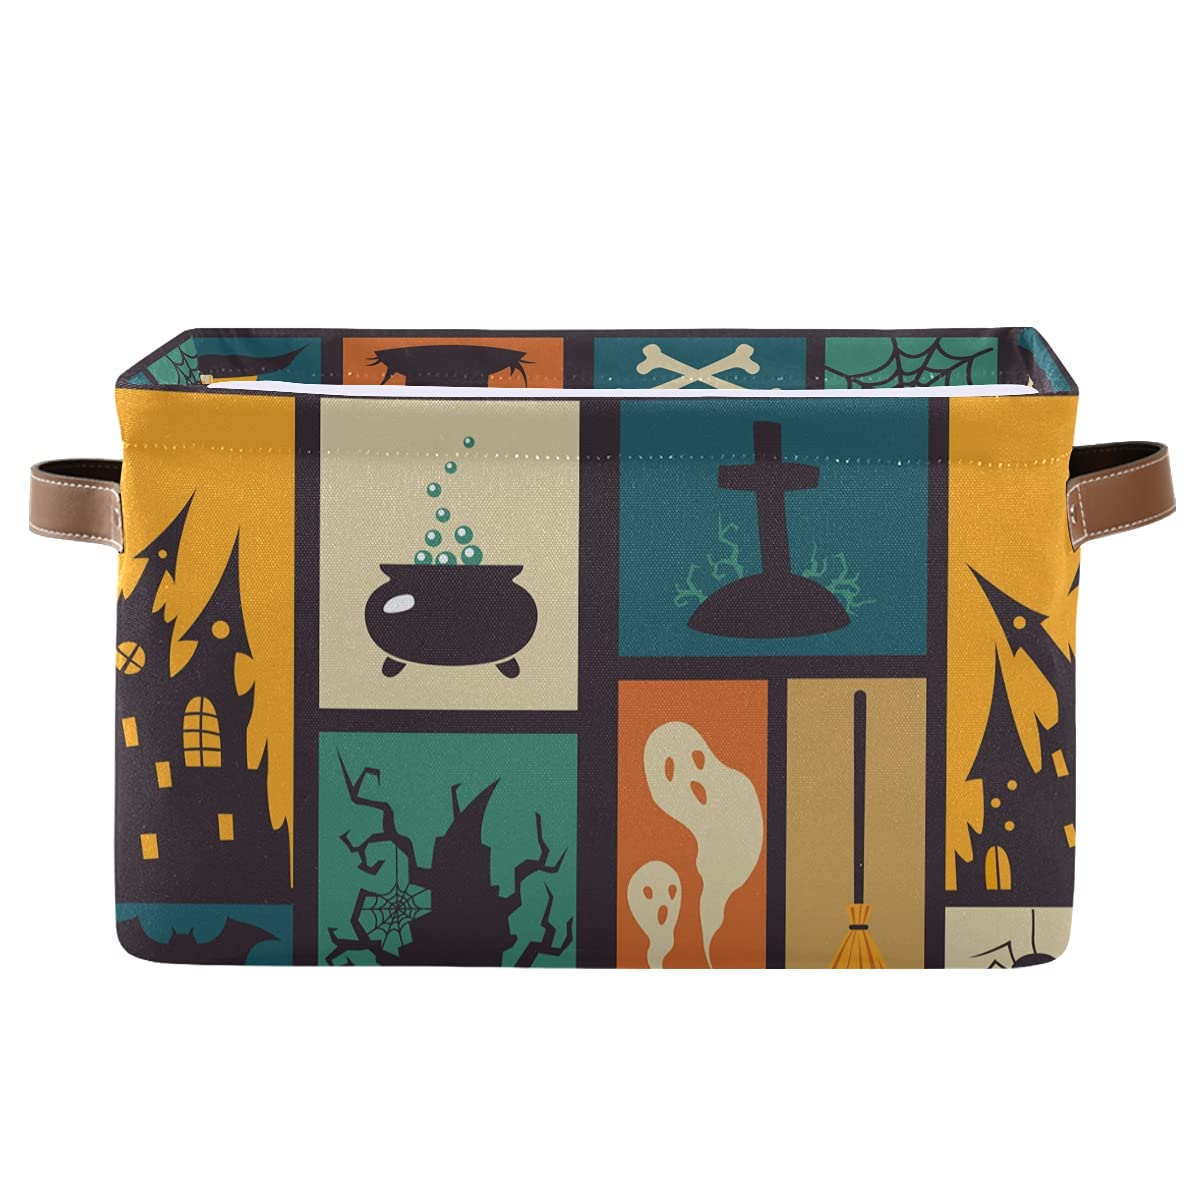 Halloween Castle Max 43% OFF Skeleton New popularity Ghost Storage Collapsible Han Bin with